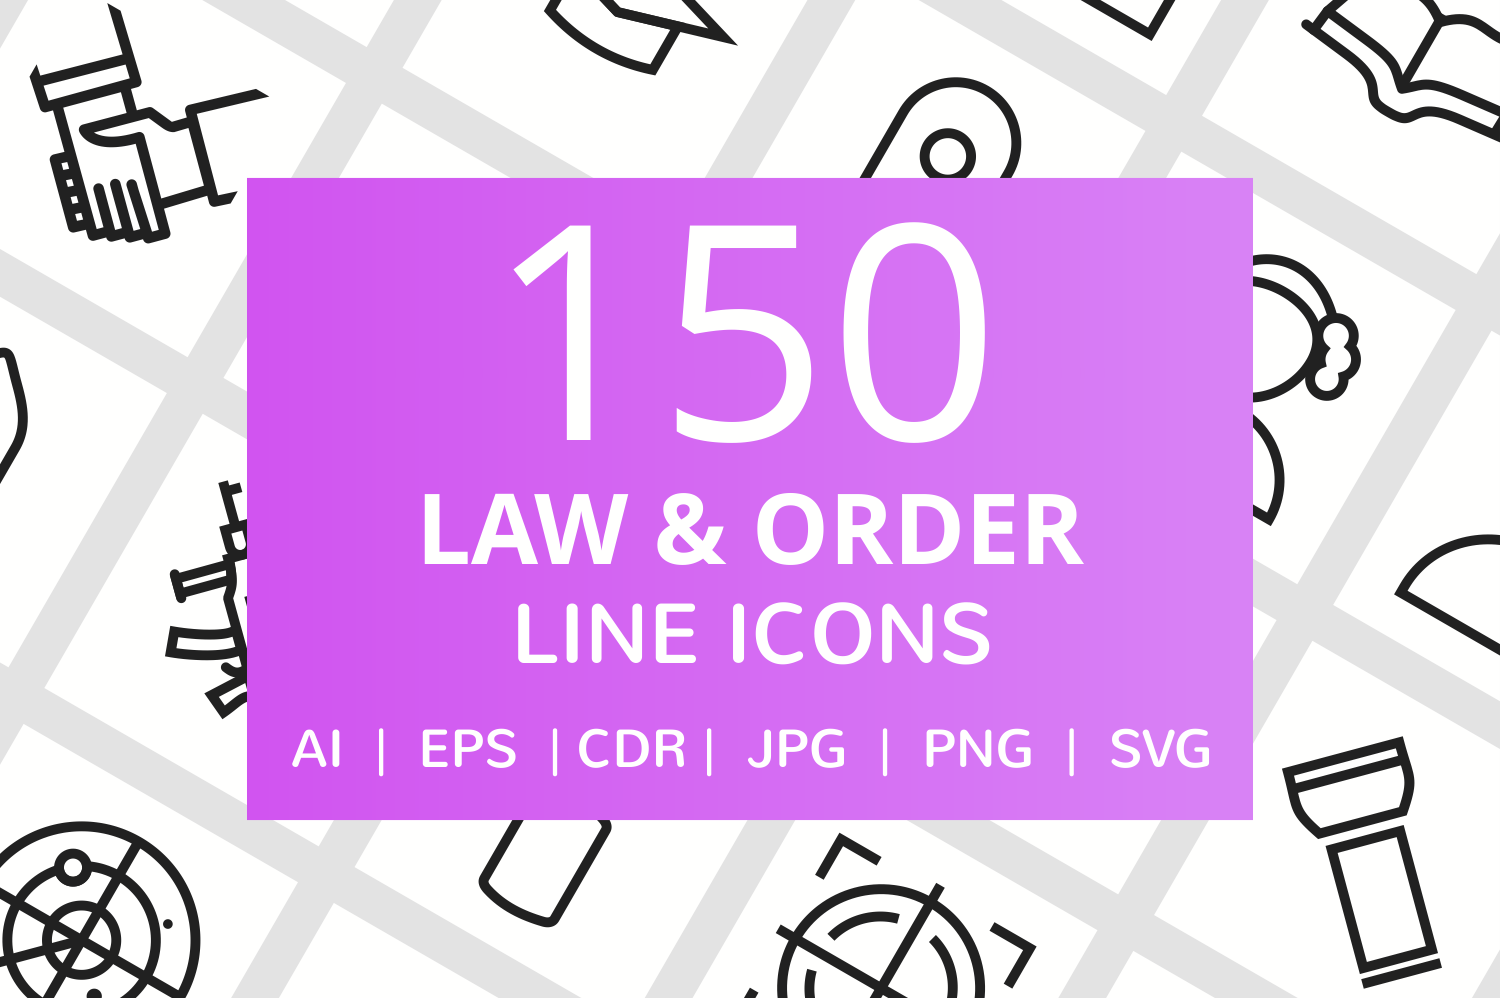 150 Law & Order Line Icons example image 1